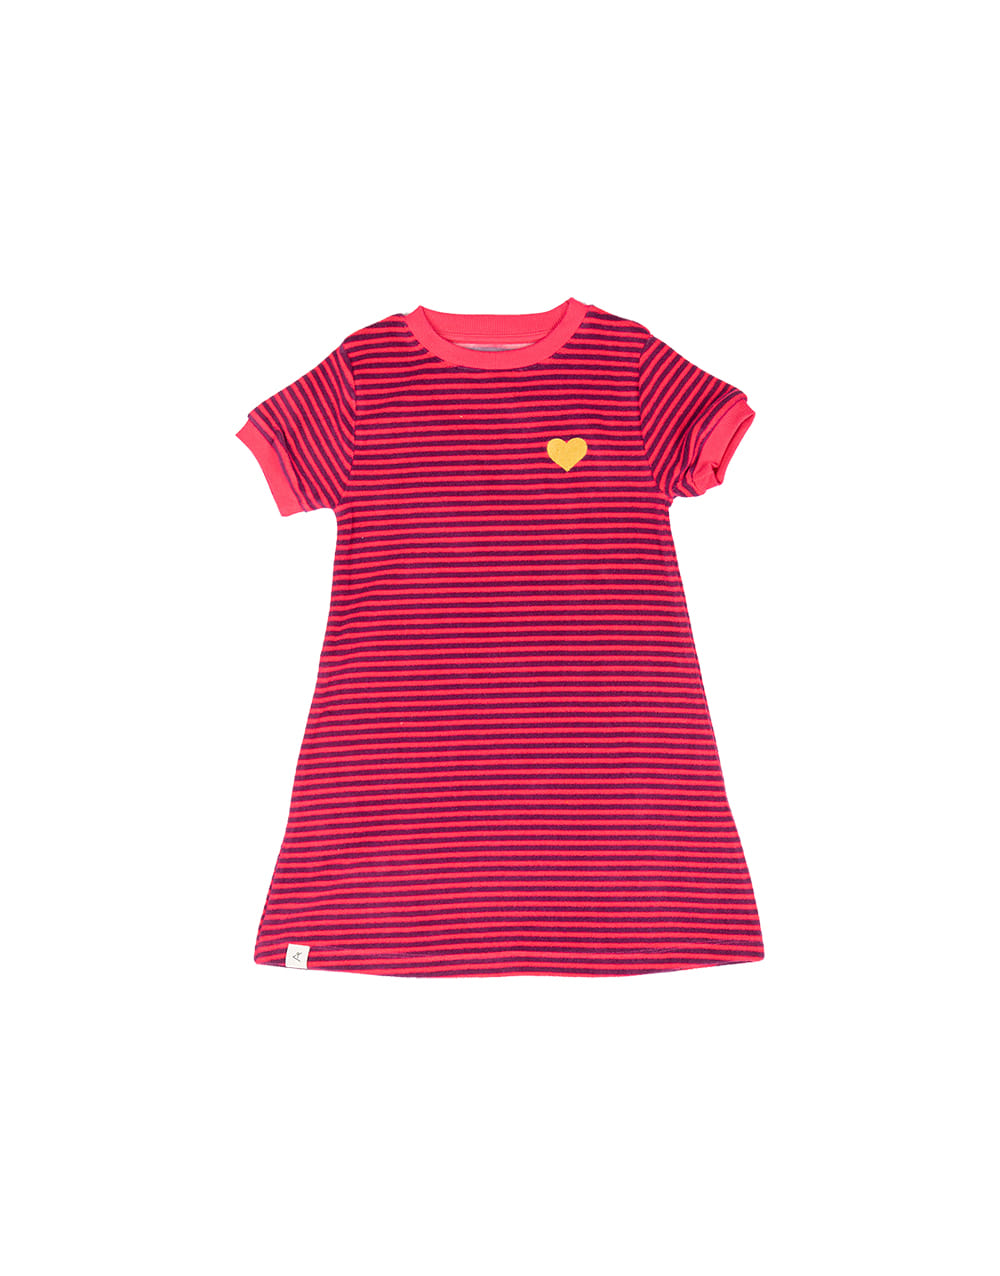 ALBA ORIGINAL VIDA DRESS   Raspberry Magic Strip